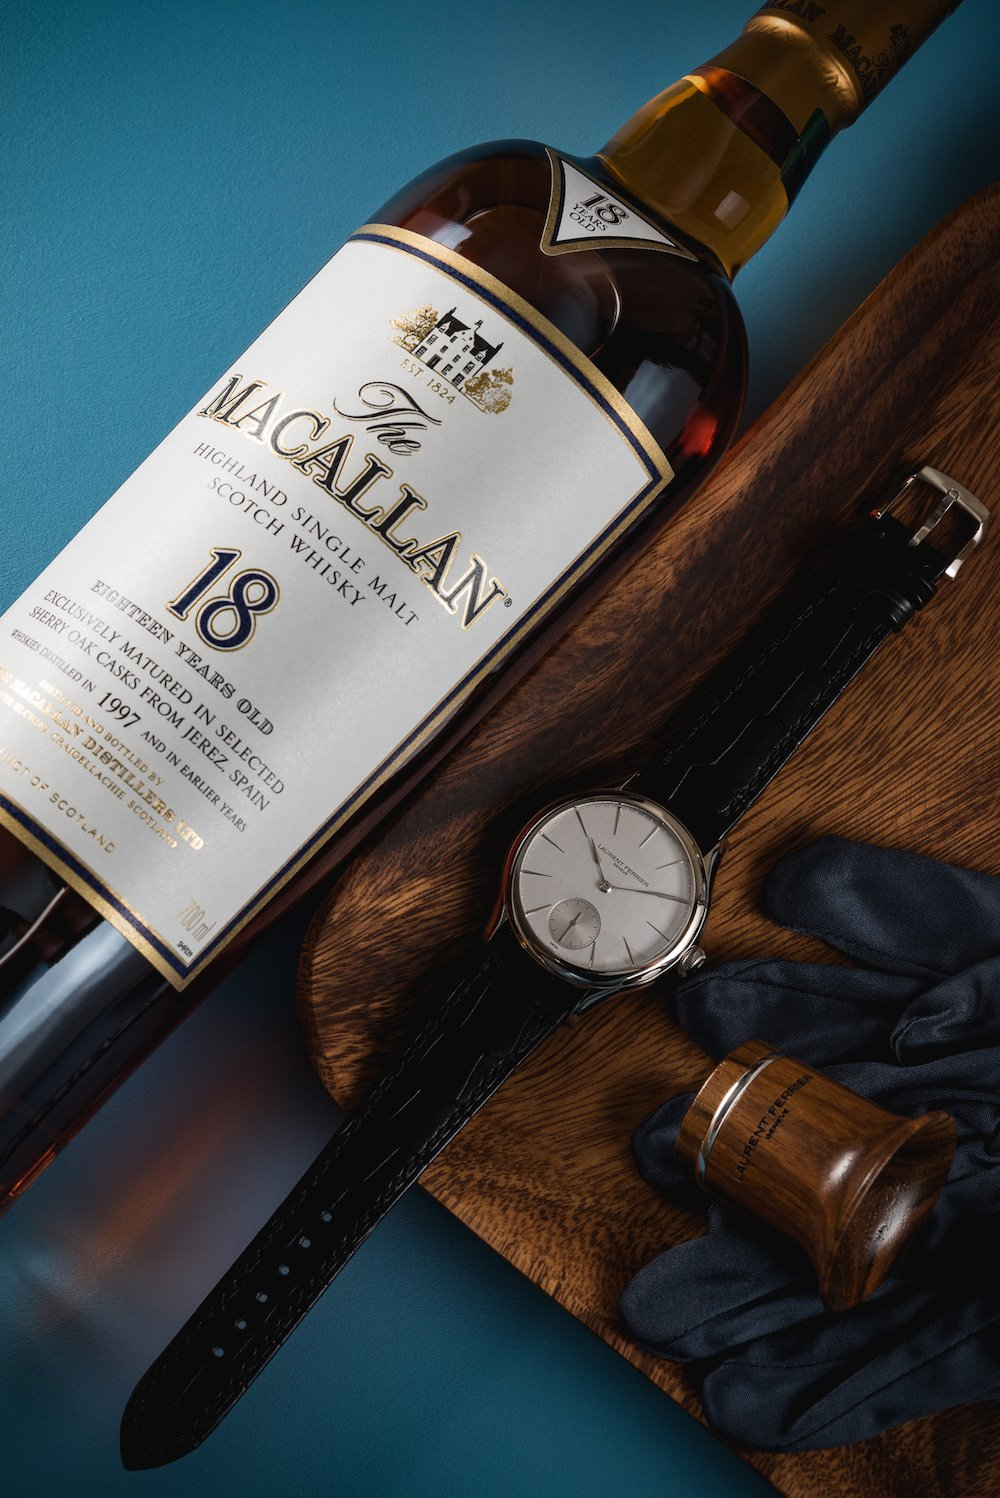 Balance The Macallan Is Third Largest Ing Single Malt Scotch In World And S Whisky Primarily D Oak Seasoned With